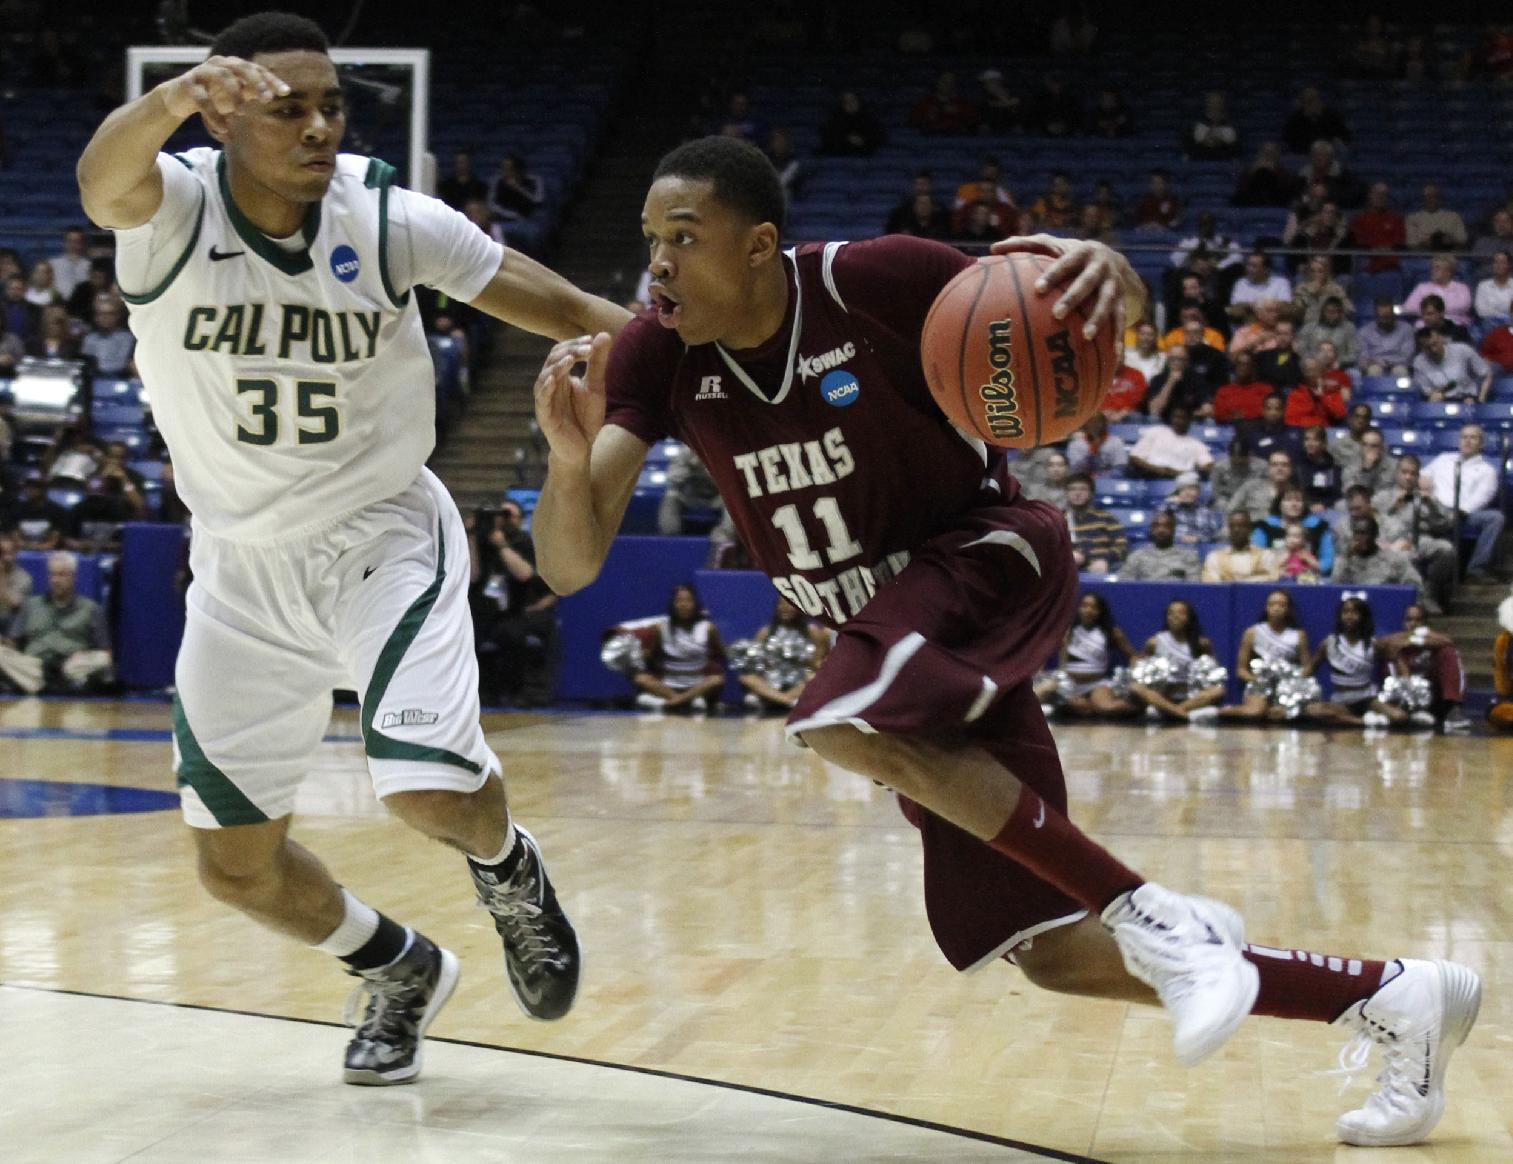 Cal Poly, just 14-19, advances in NCAA tournament